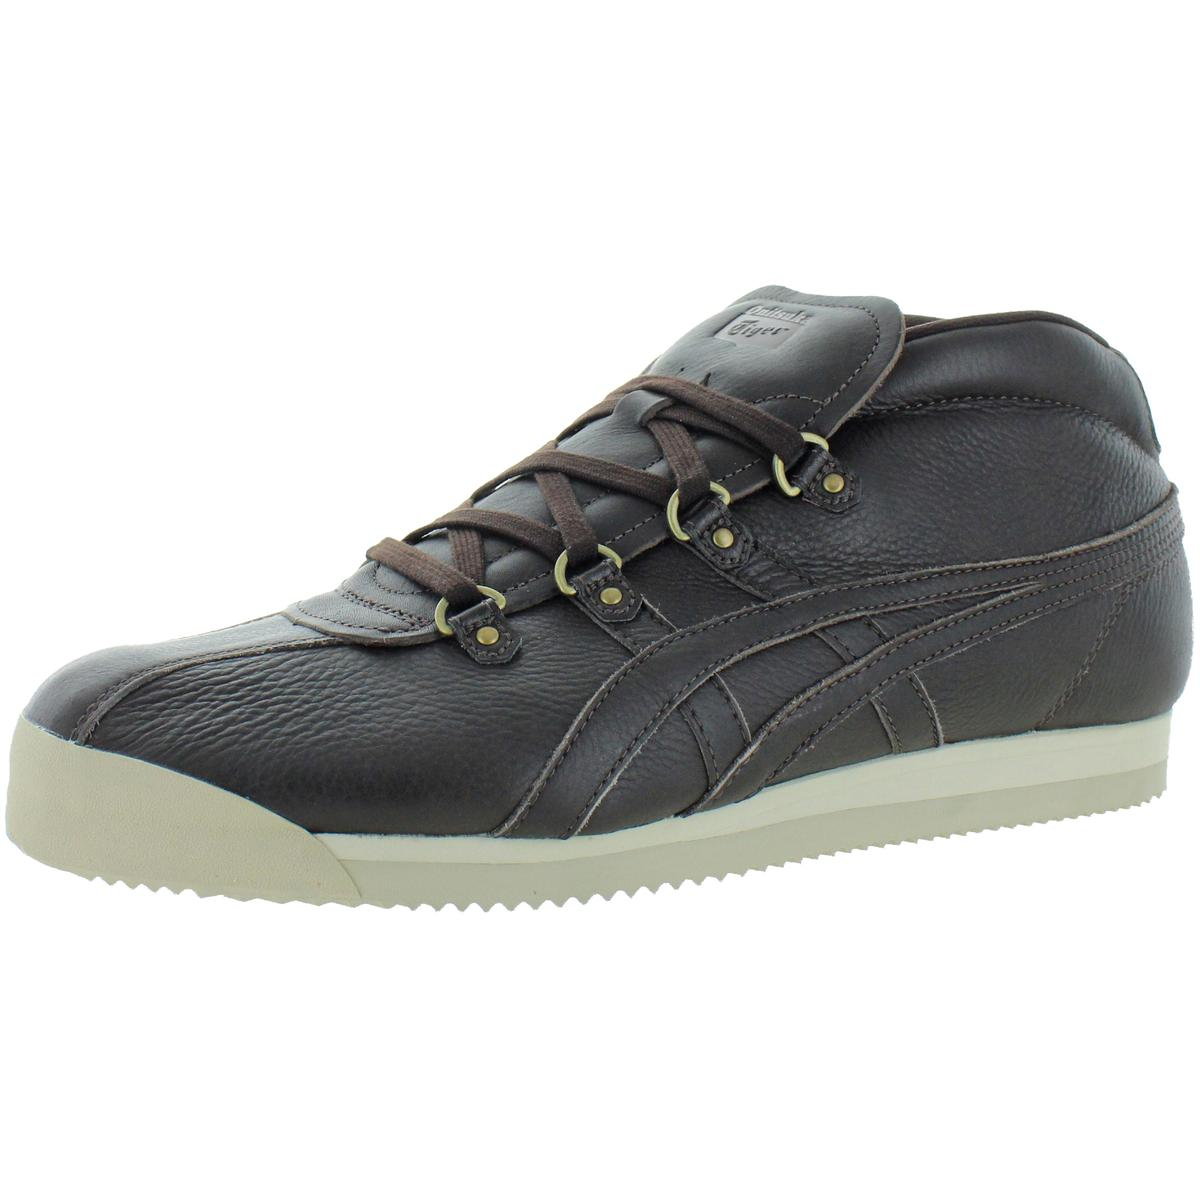 Onitsuka Tiger Mens Schanze 72 Leather Lifestyle Dad Sneakers Shoes BHFO 9038